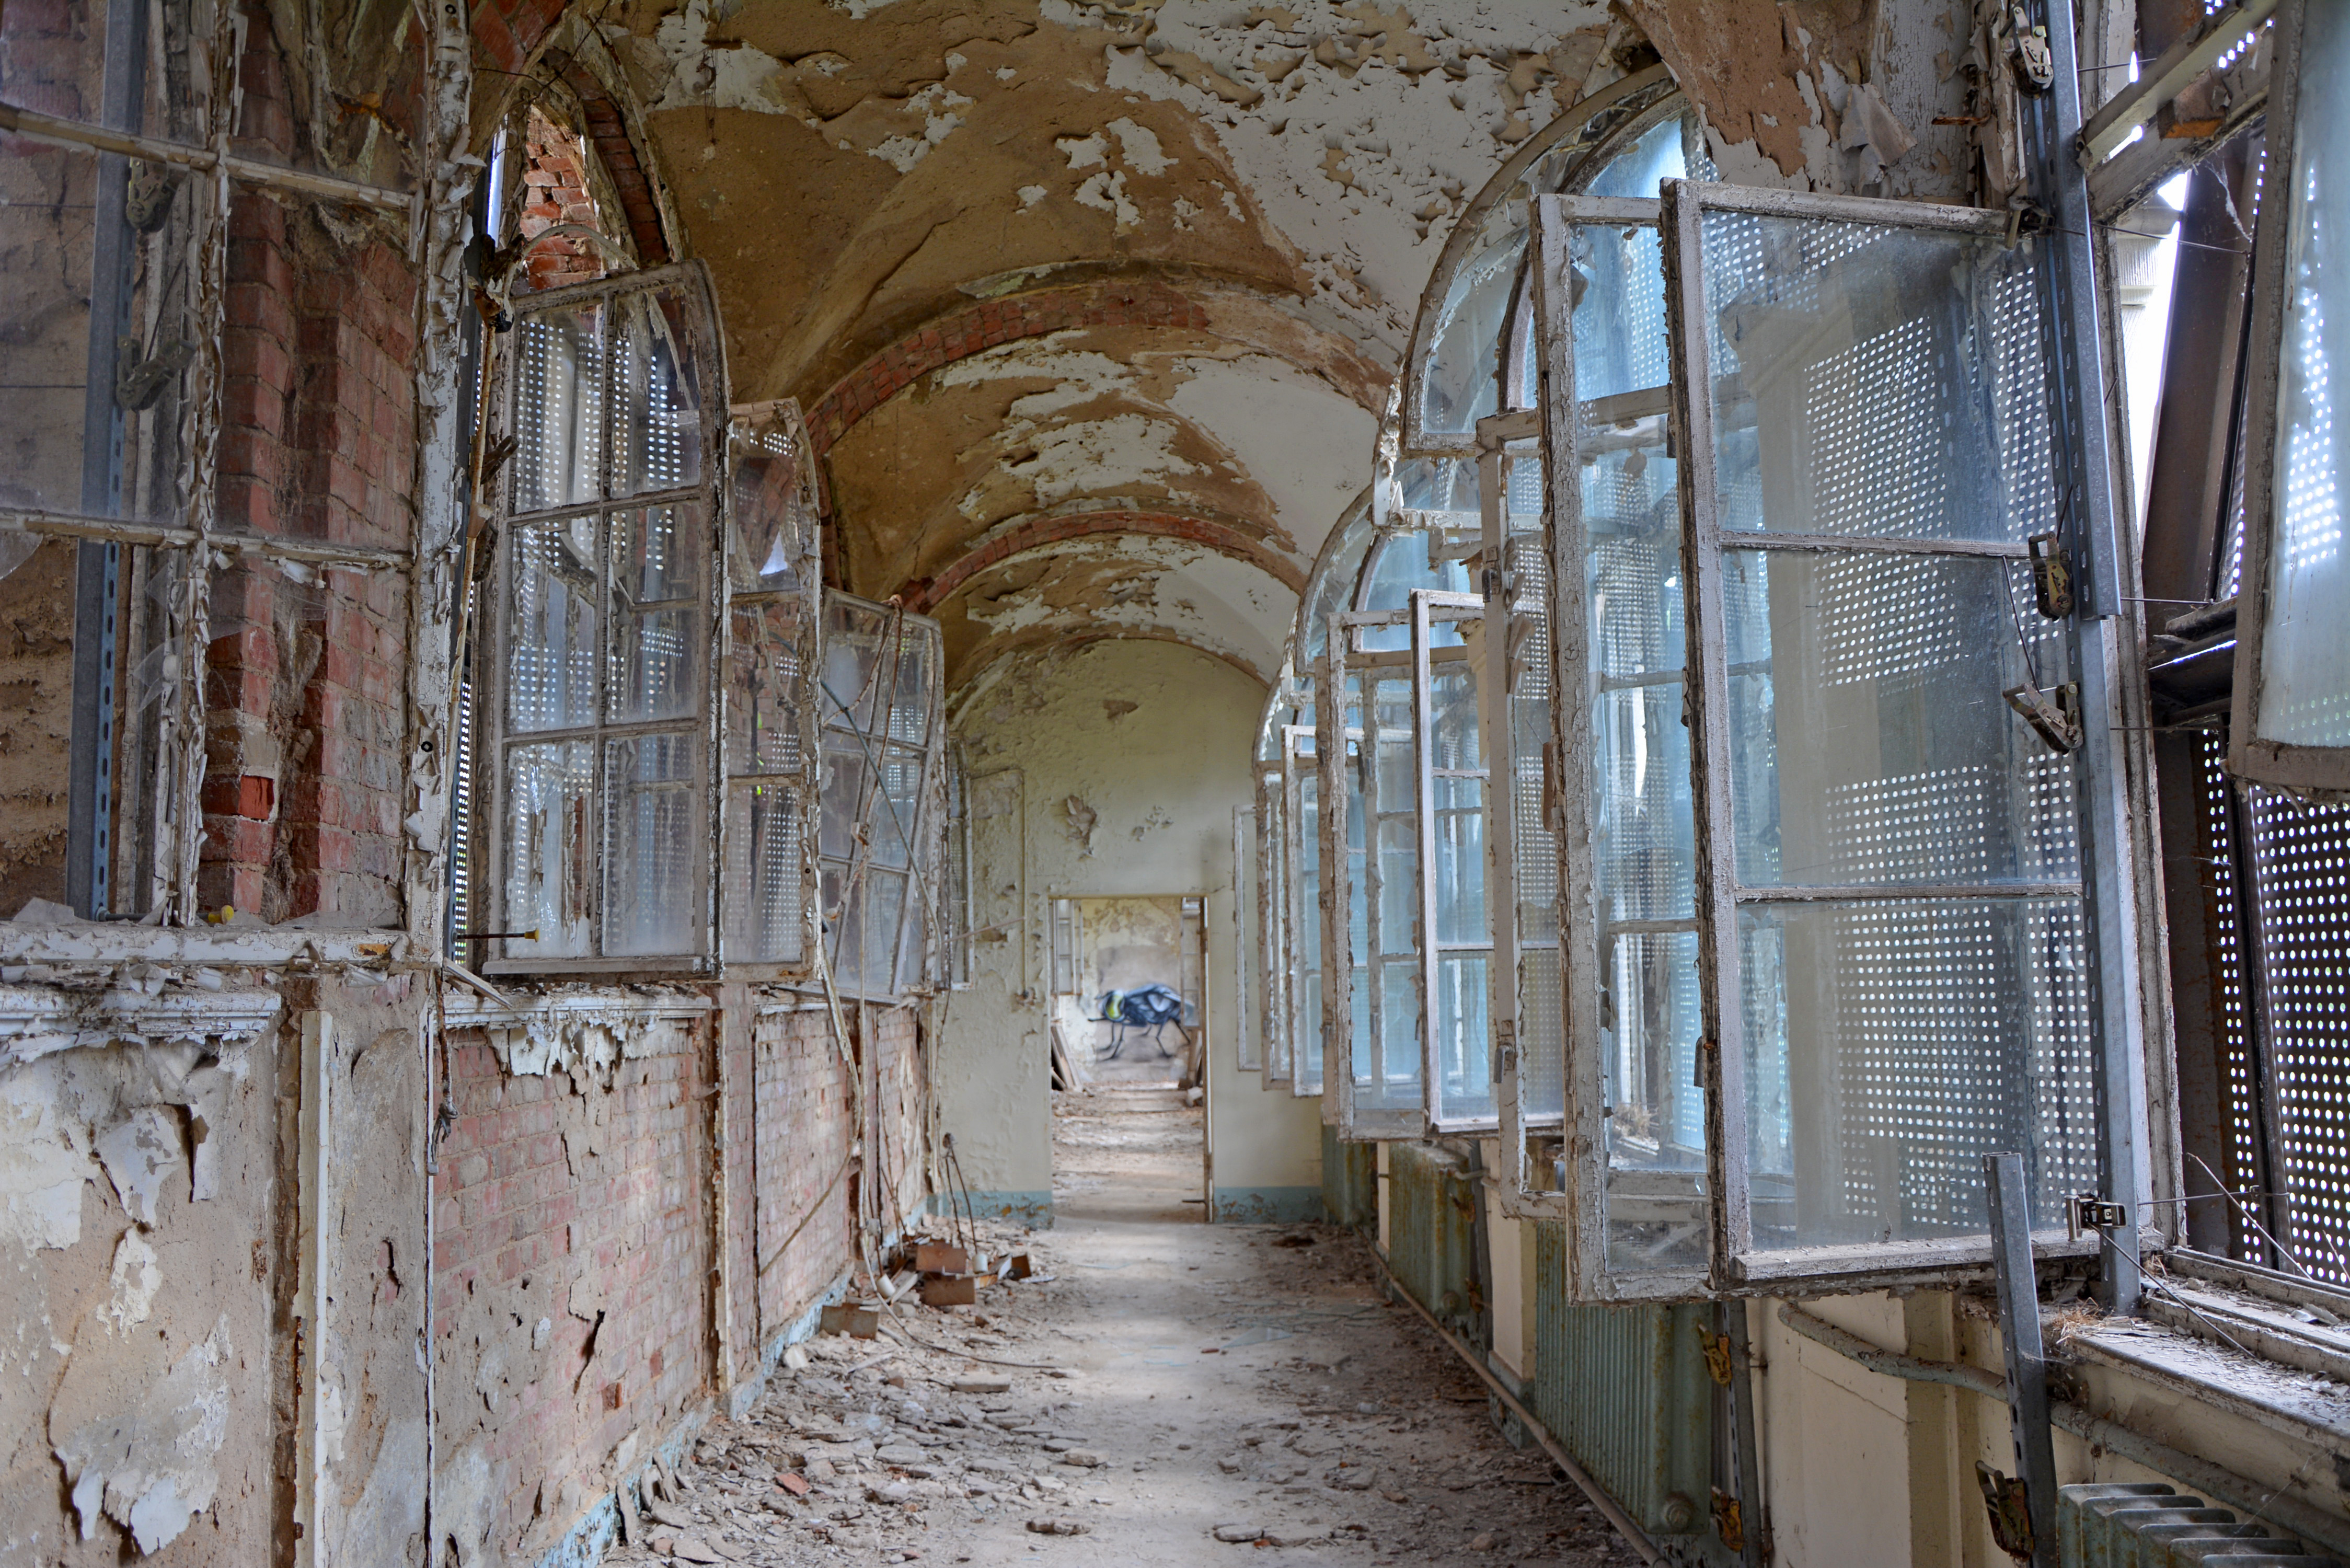 Abandoned Places in Berlin Waldhaus Buch Abandoned Sanatorium Garden Hall Beautiful